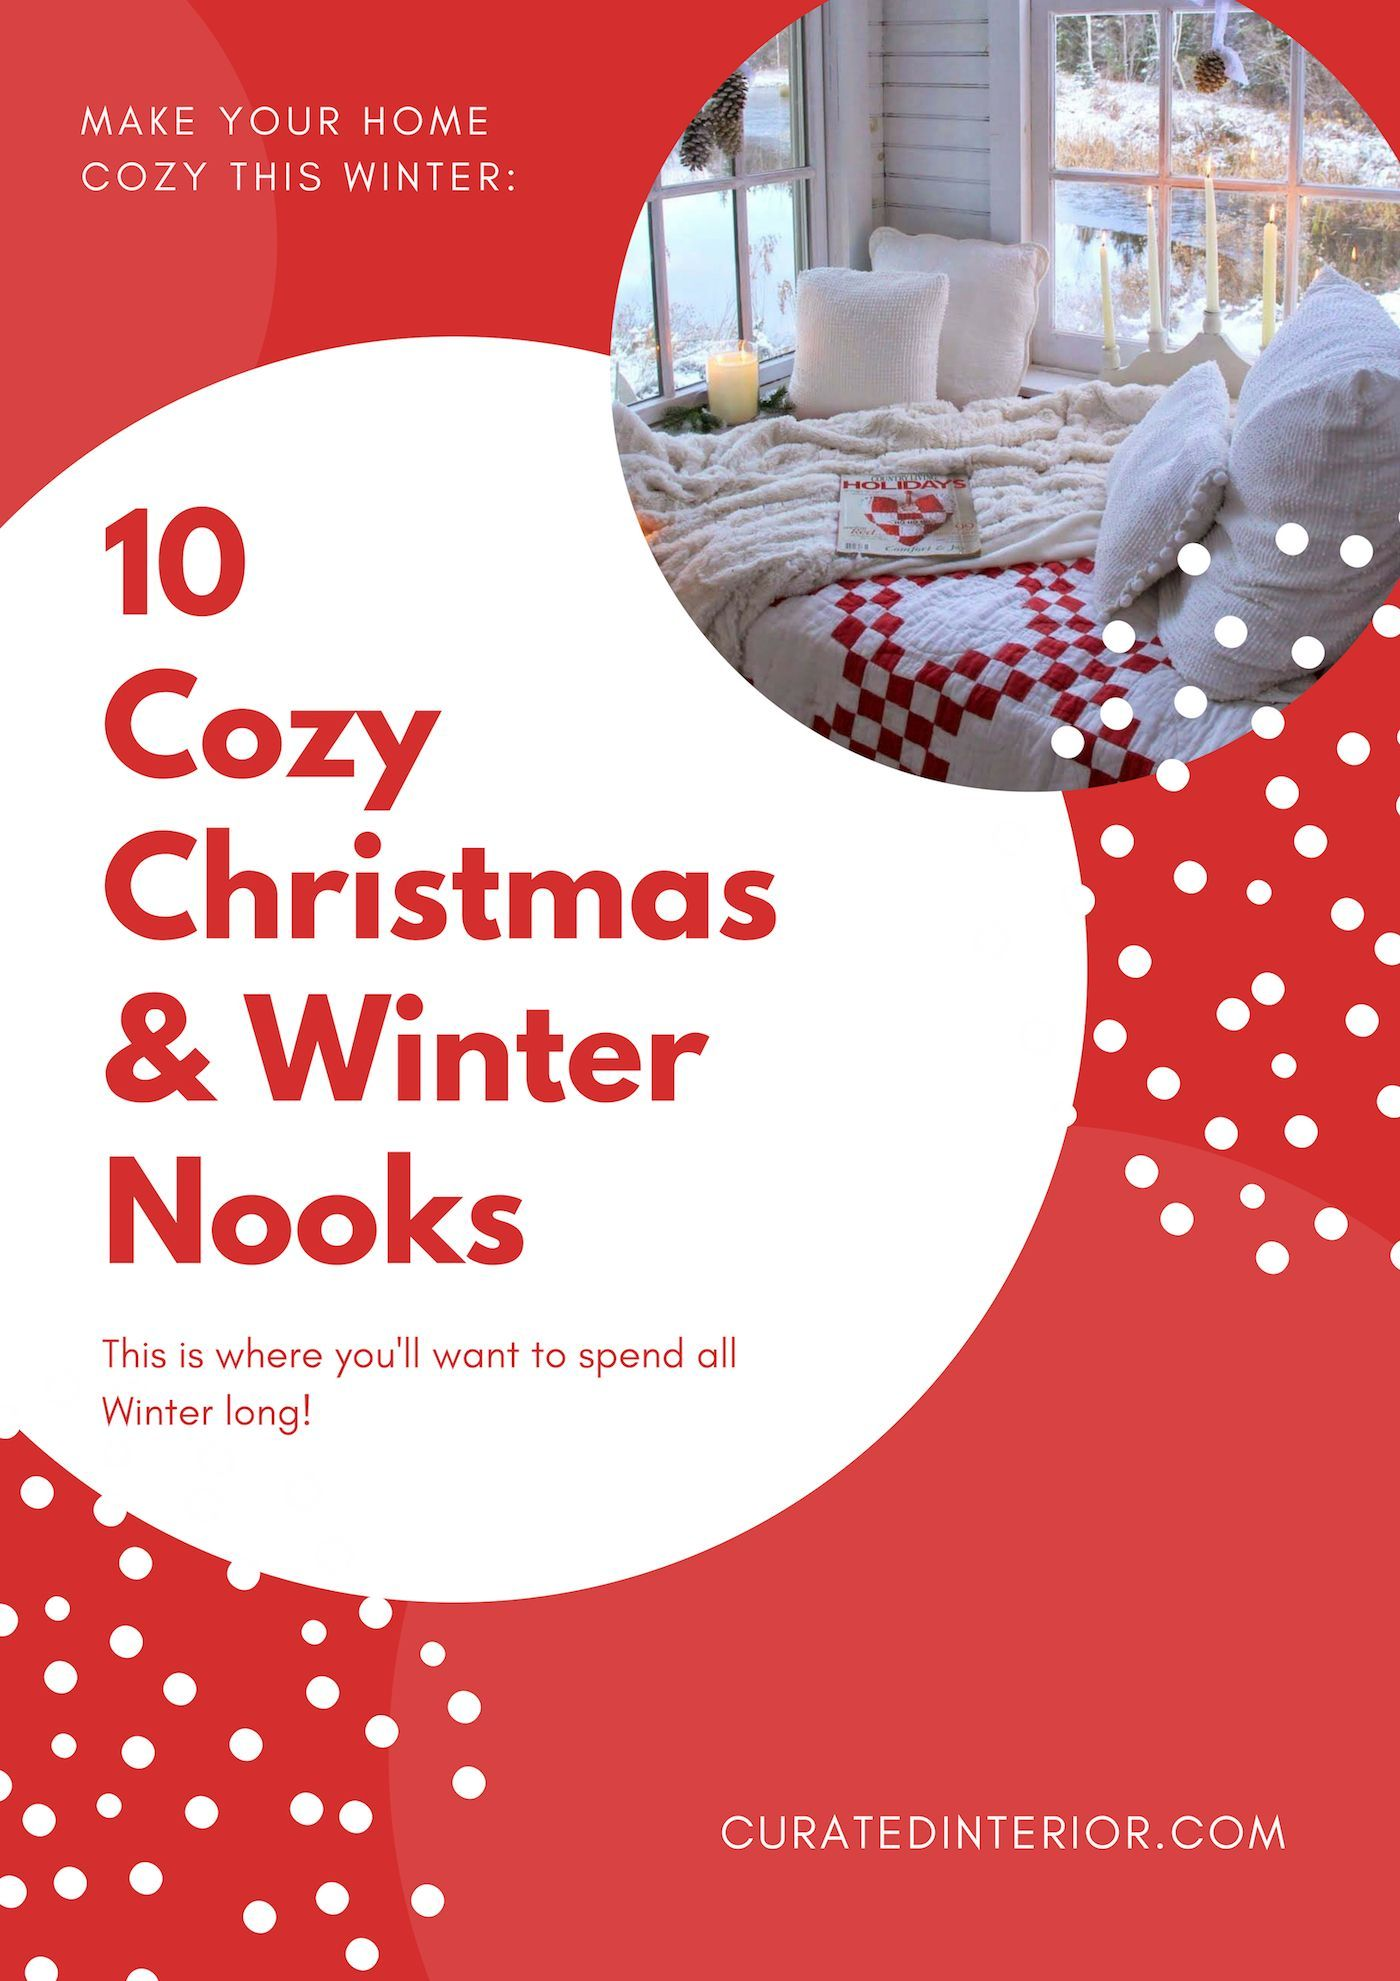 10 Cozy Christmas & Winter Nooks – Where you'll be ALL winter long!